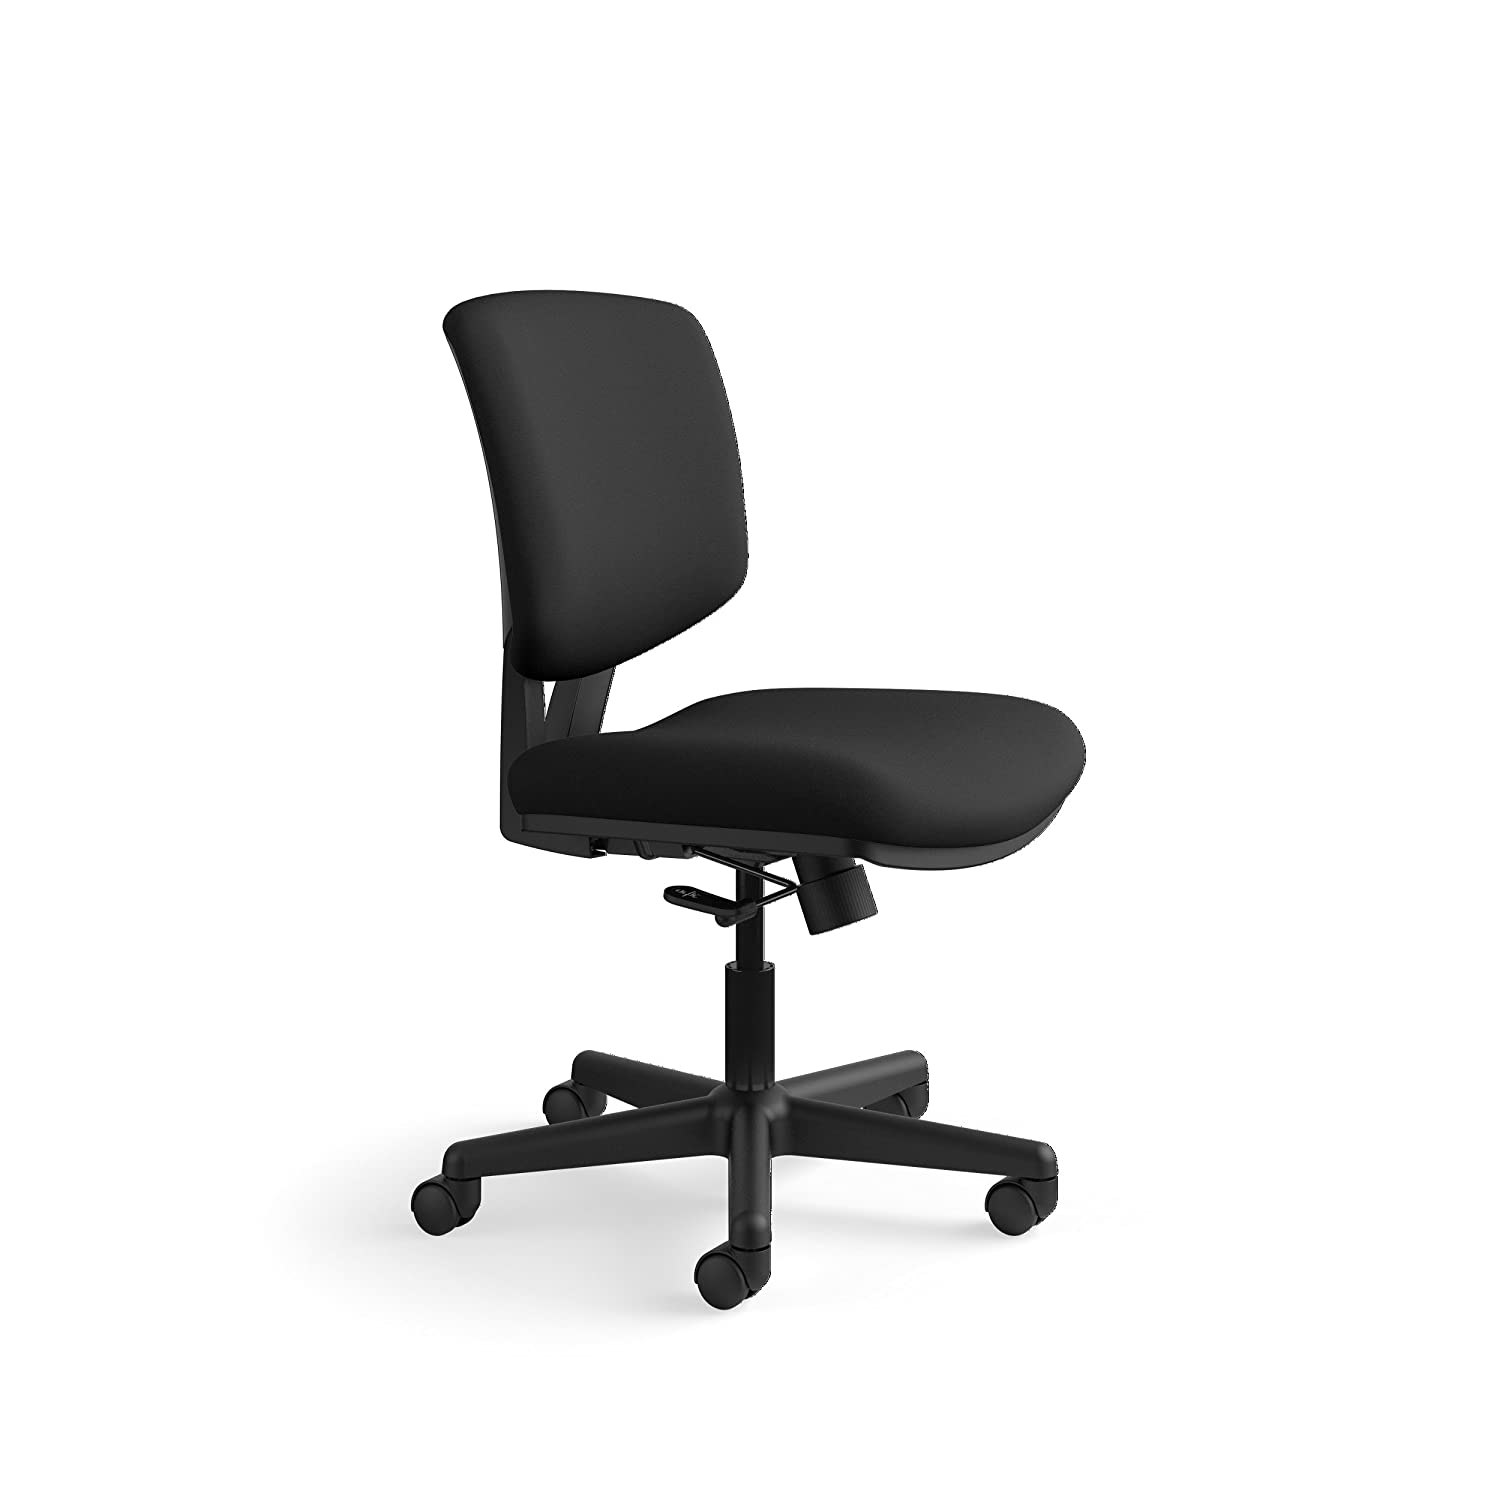 HH5701 The HON Company H5701.GA42.T Upholstered Computer Chair for Office Desk Crimson HON Volt Task Chair